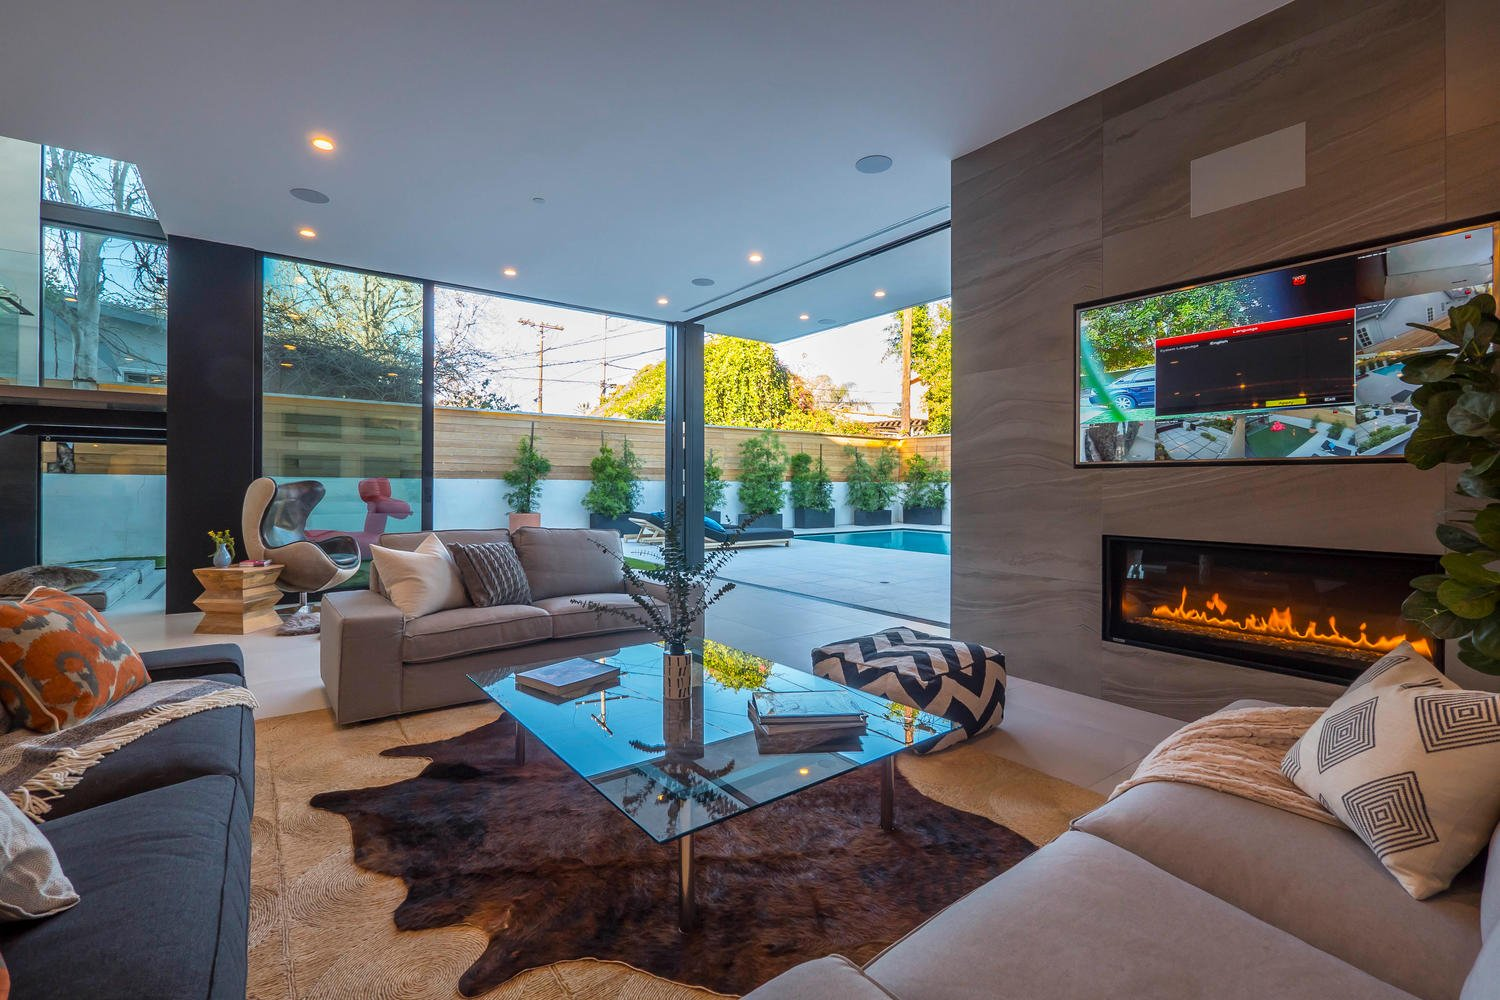 406 S Sycamore Ave | The Bienstock Group